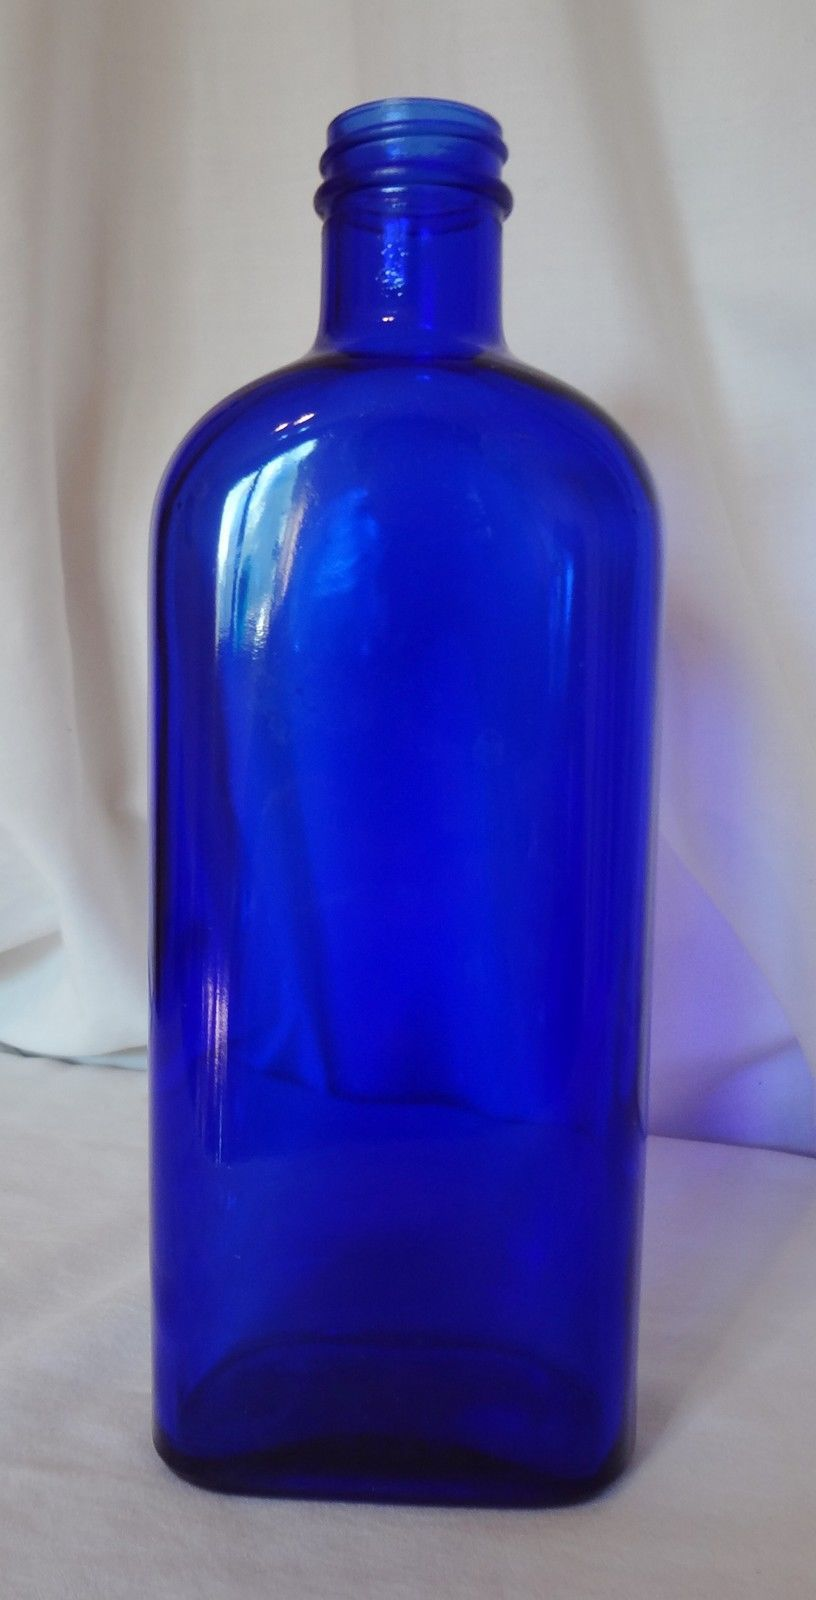 Cobalt Blue Glass Bottle Vintage Medicinal Apothecary 9 Inches